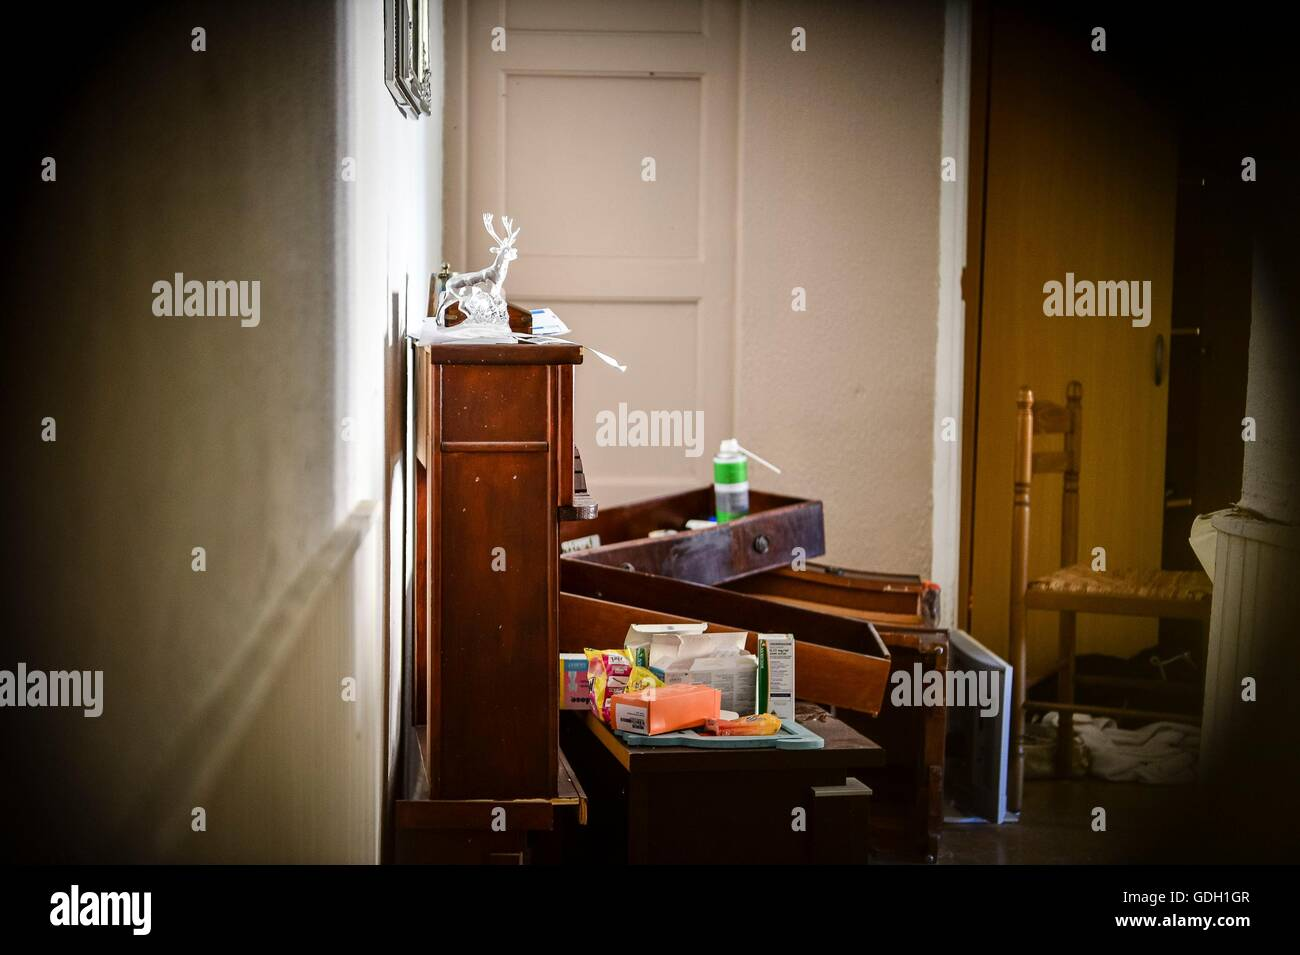 inside front door apartment. A View Inside The Flat Through Front Door Keyhole Of Apartment Where Mohamed Lahouaiej Bouhlel Lived At 62 Route De Turin, Nice I